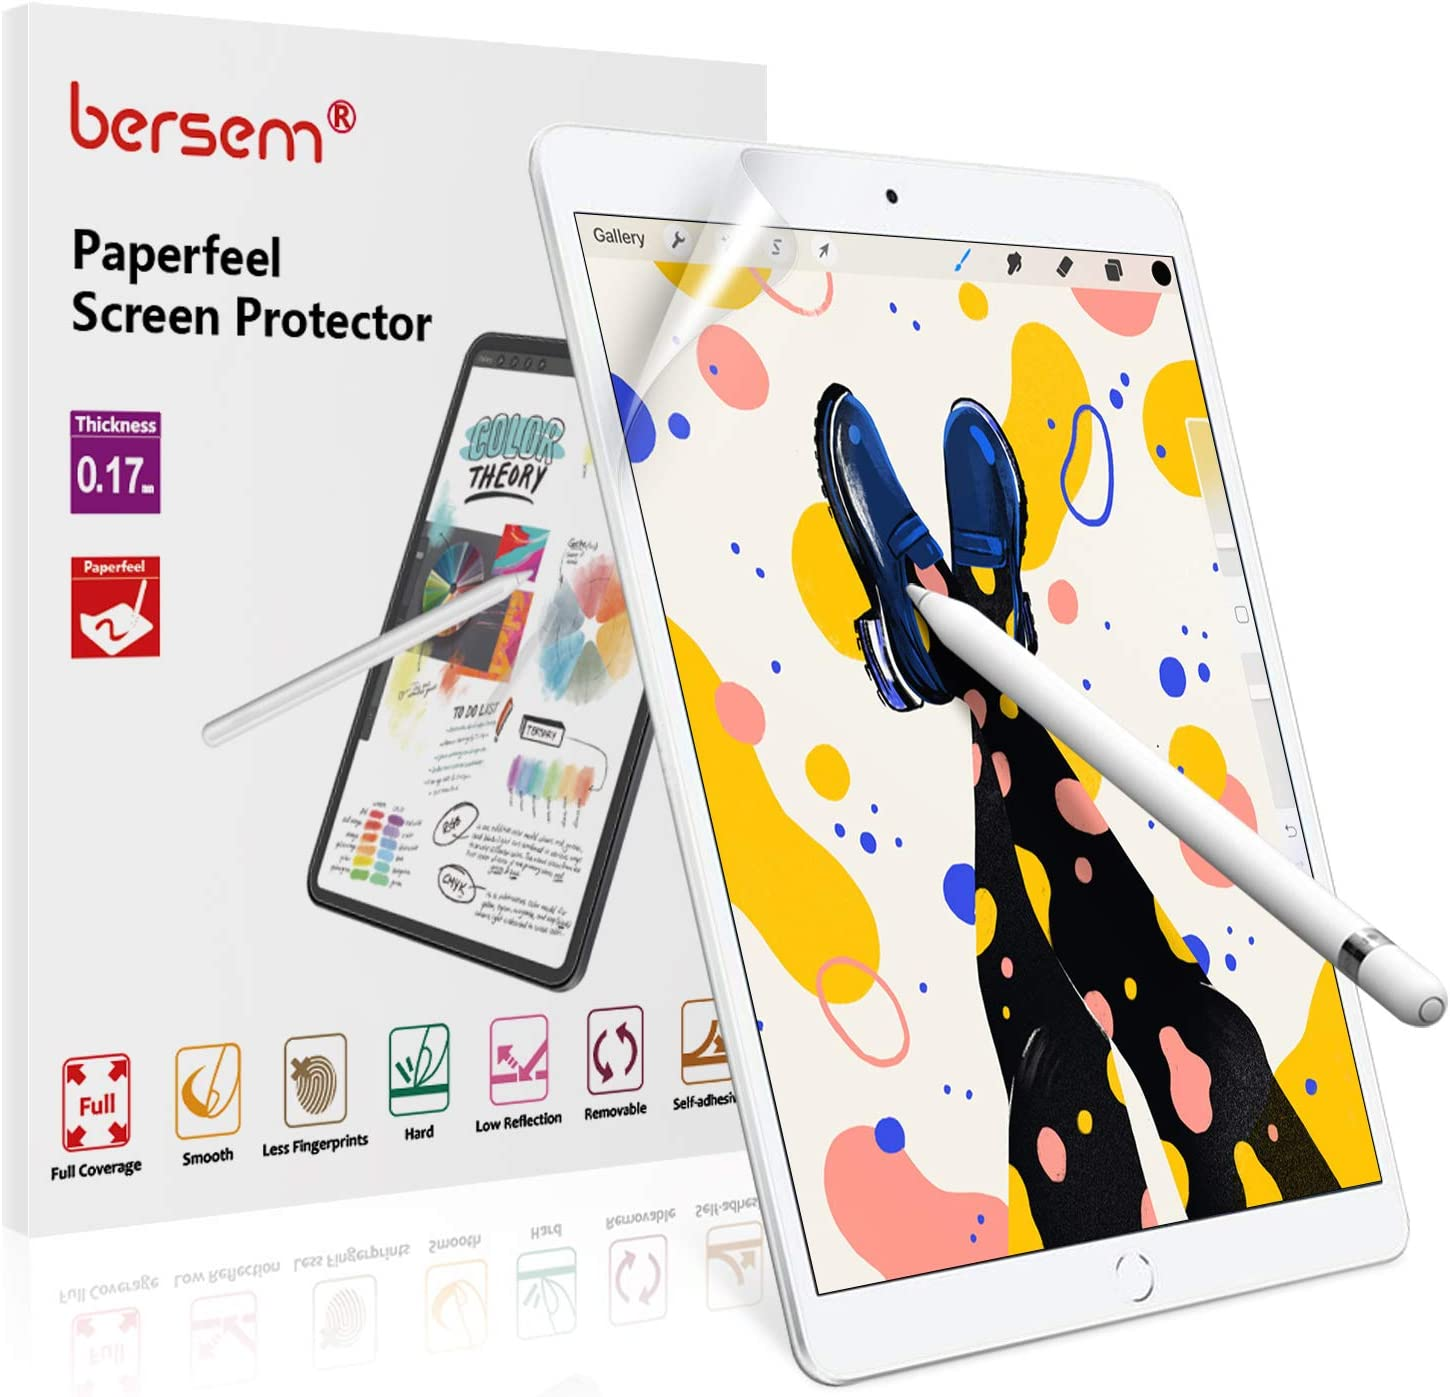 BERSEM[2 PACK]Paperfeel Screen Protector for iPad 8/7 (10.2-Inch, 2020/2019 Model, 8th / 7th Generation), Paperfeel iPad 10.2 Matte Screen Protector Anti Glare With Easy Installation Kit Write and Draw Like on Paper